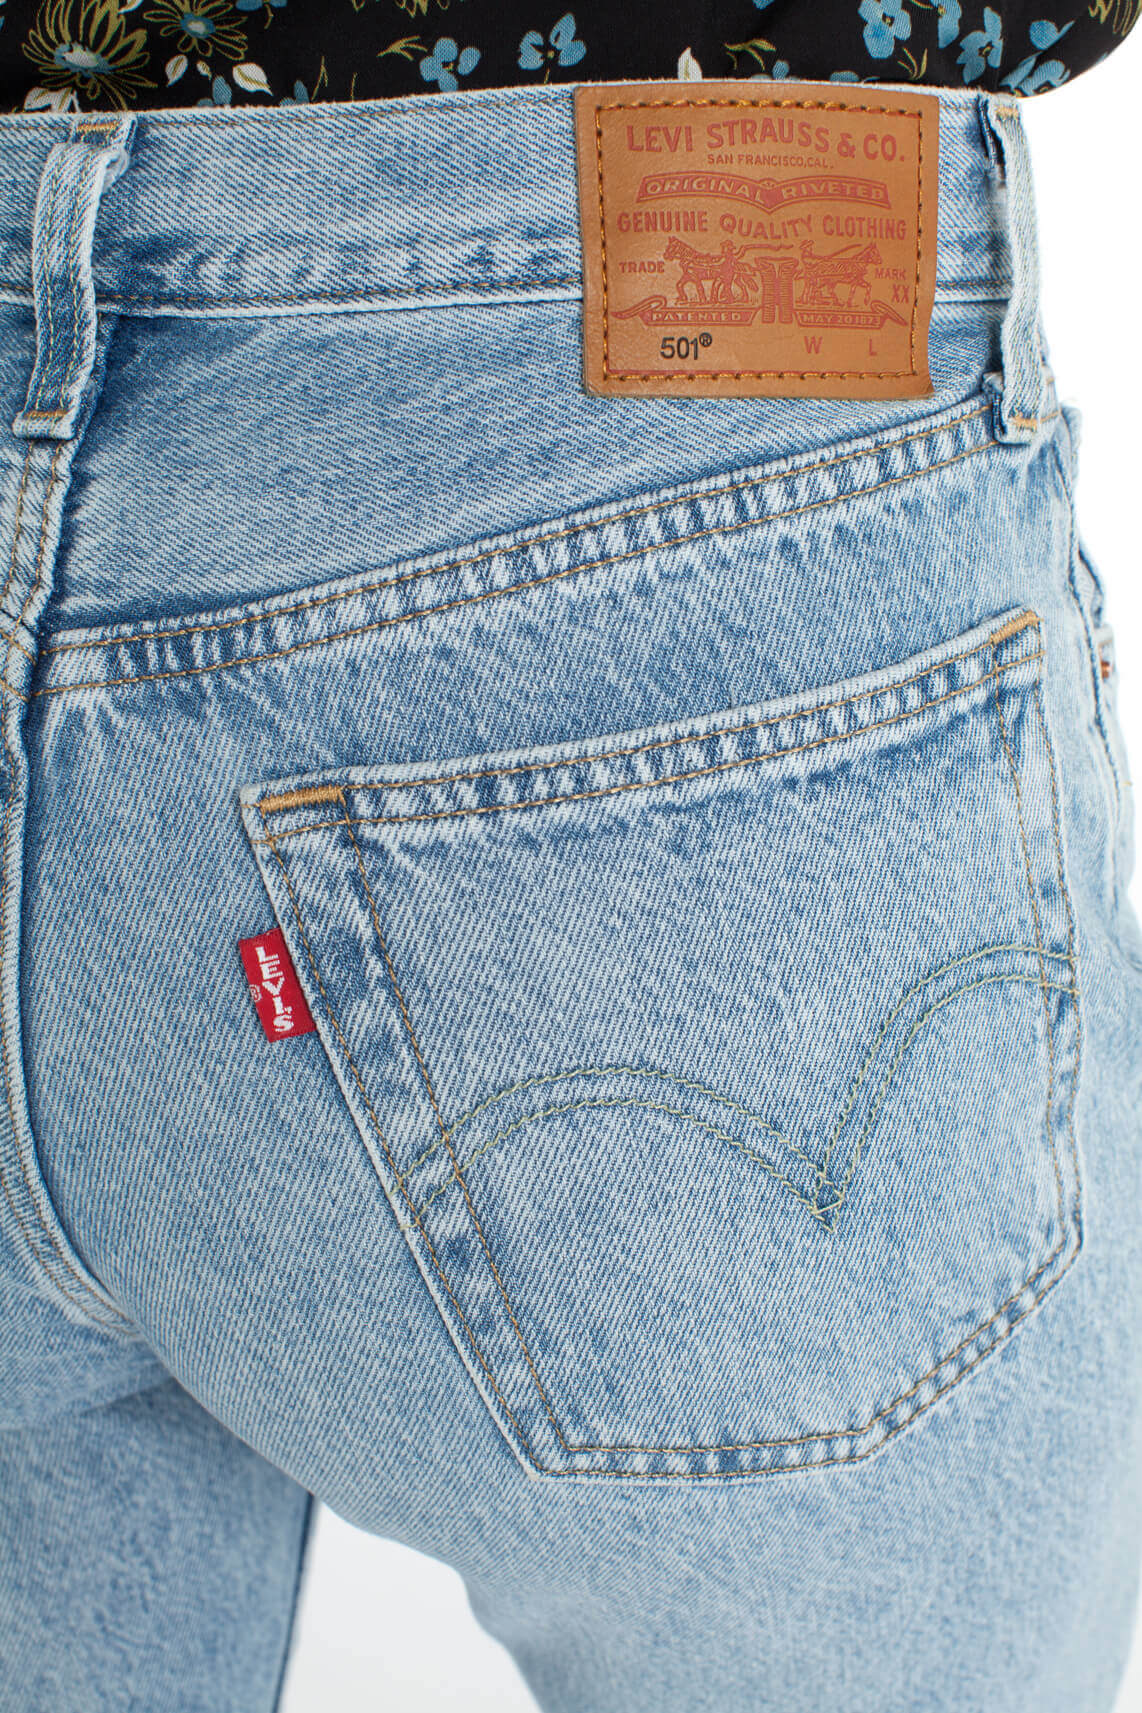 Levi s Dames 501 cropped jeans Blauw